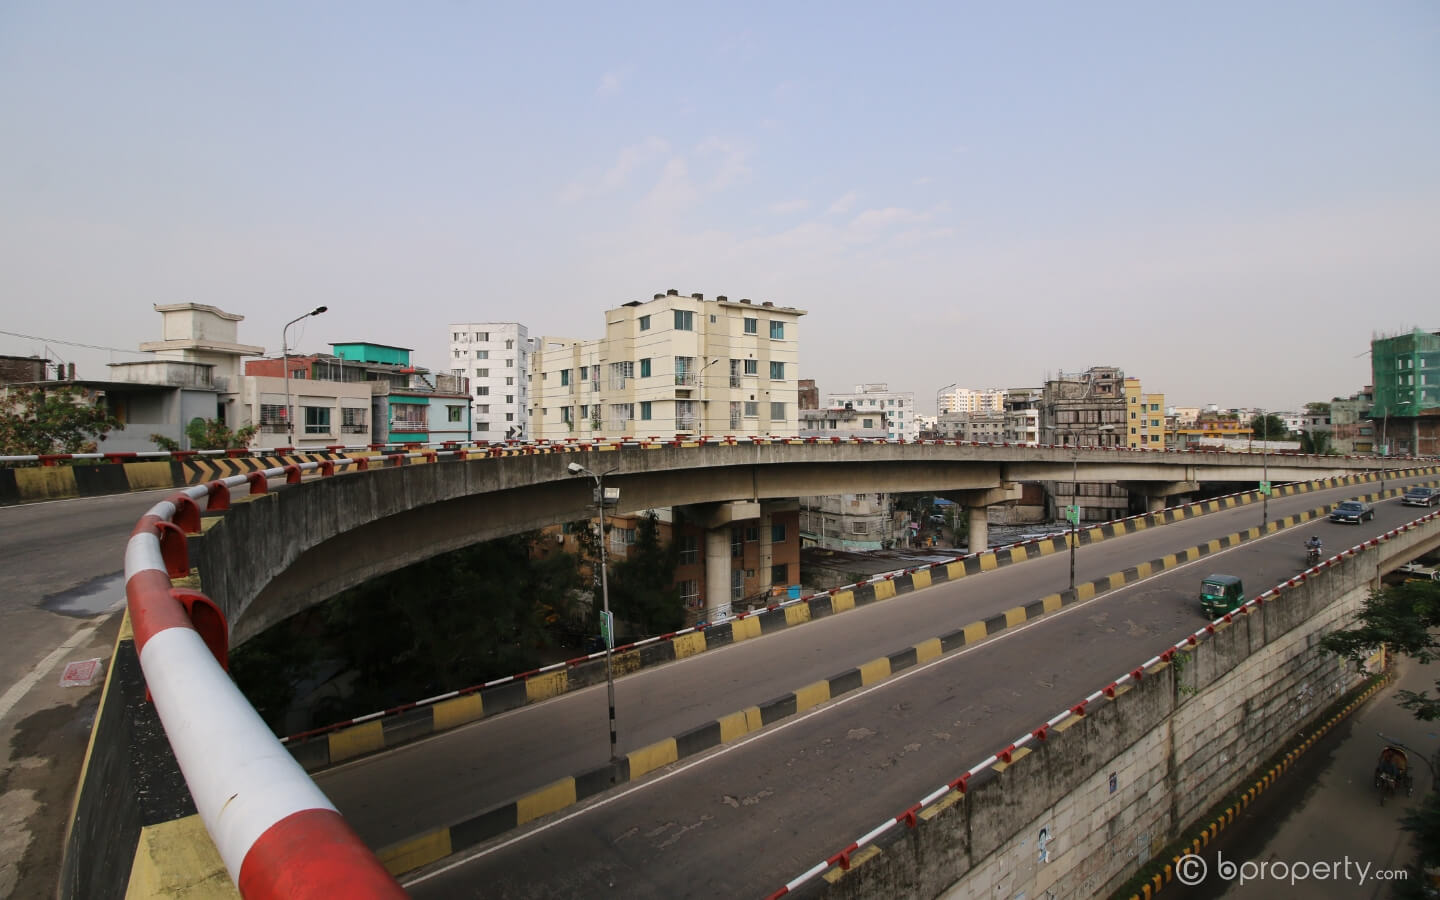 There seem to be no significant effects of flyovers on traffic condition of Dhaka city